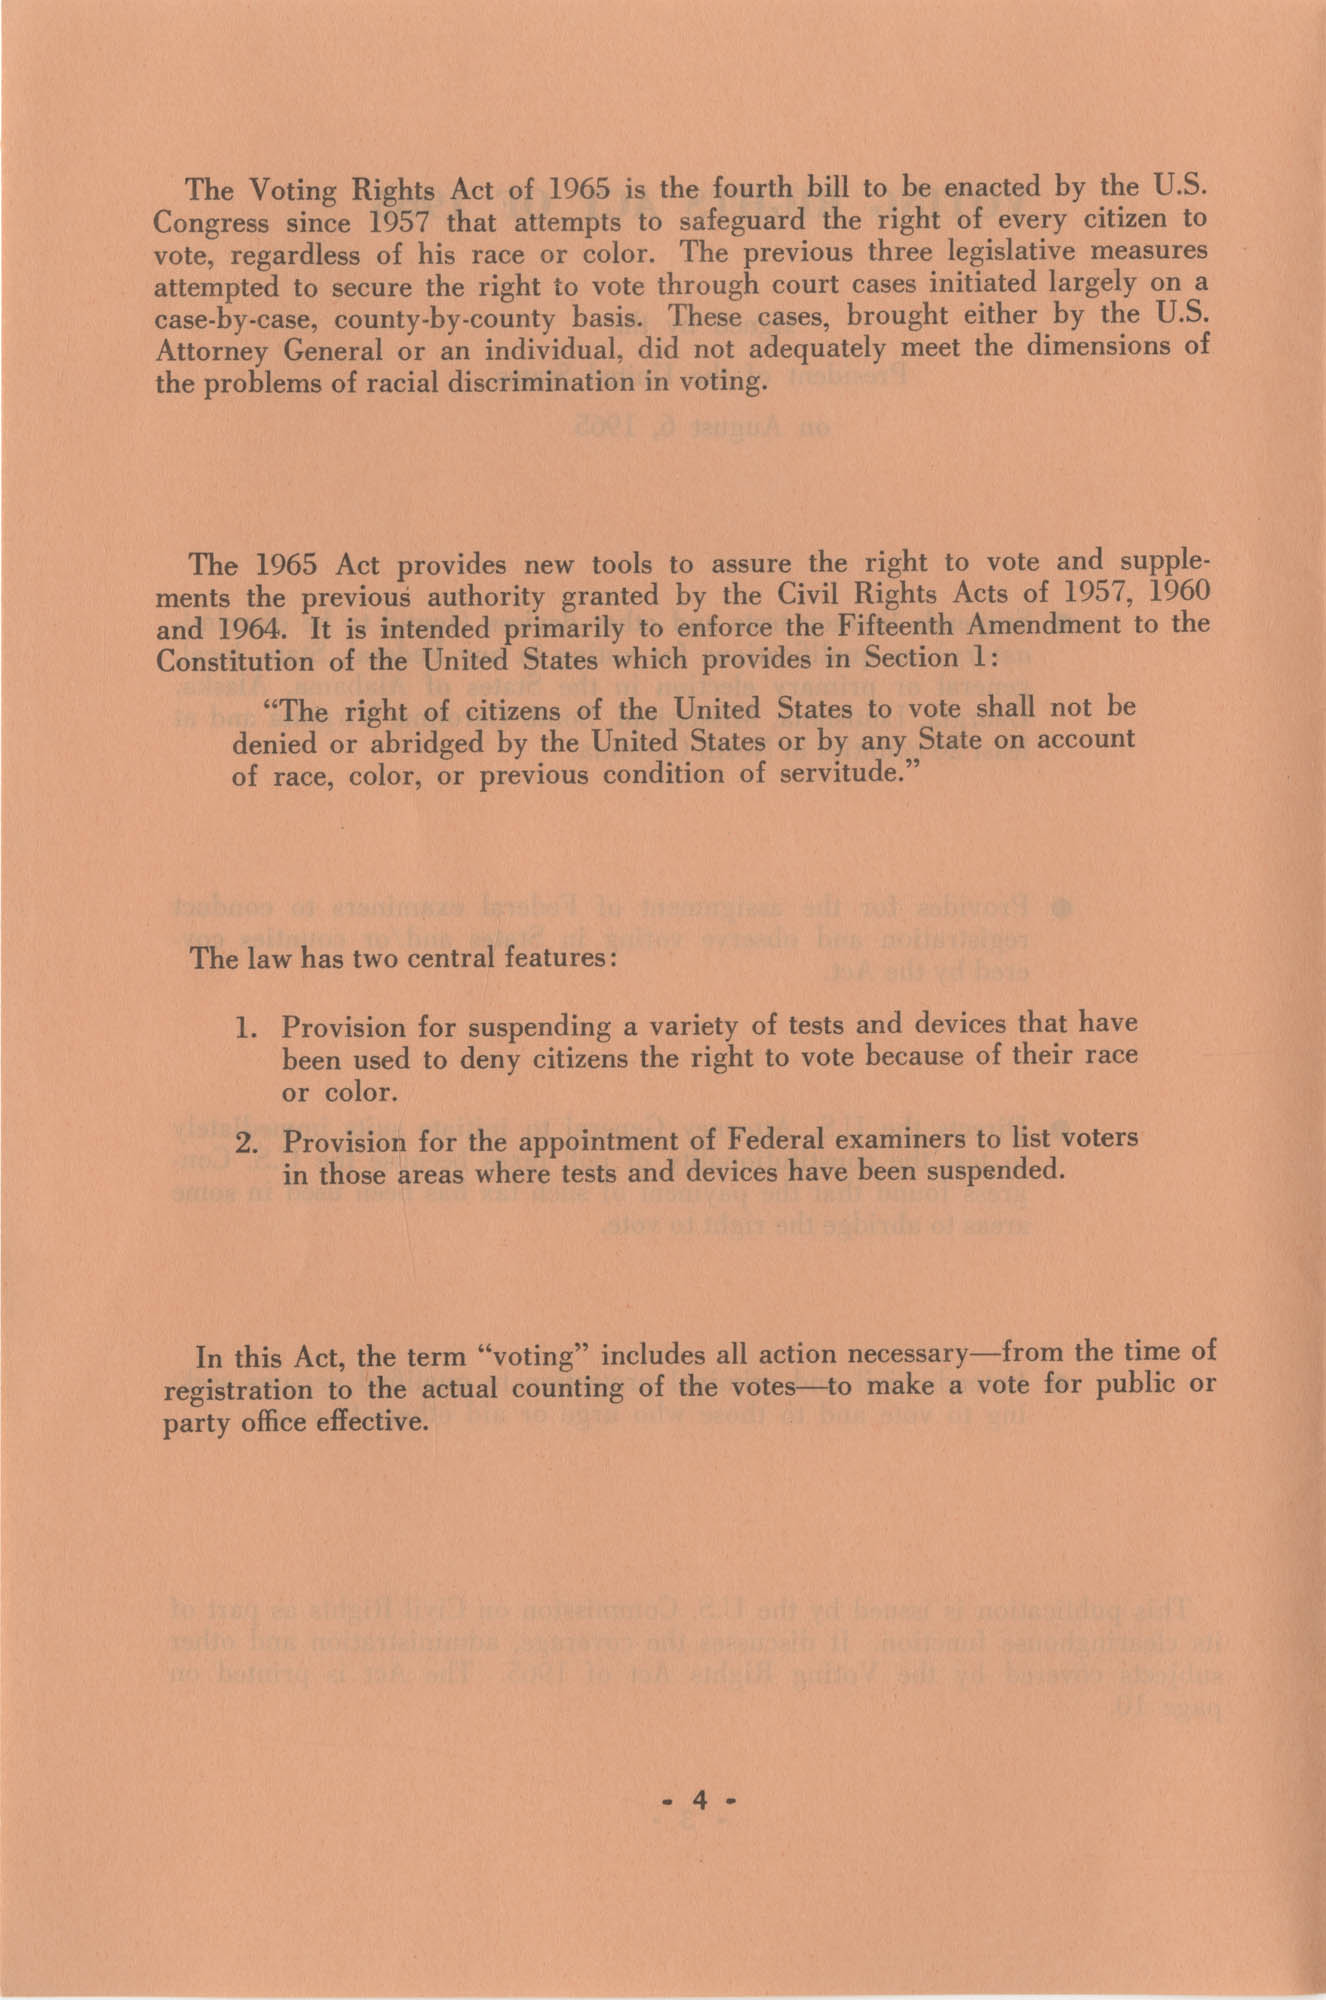 The Voting Rights Act of 1965, Page 4